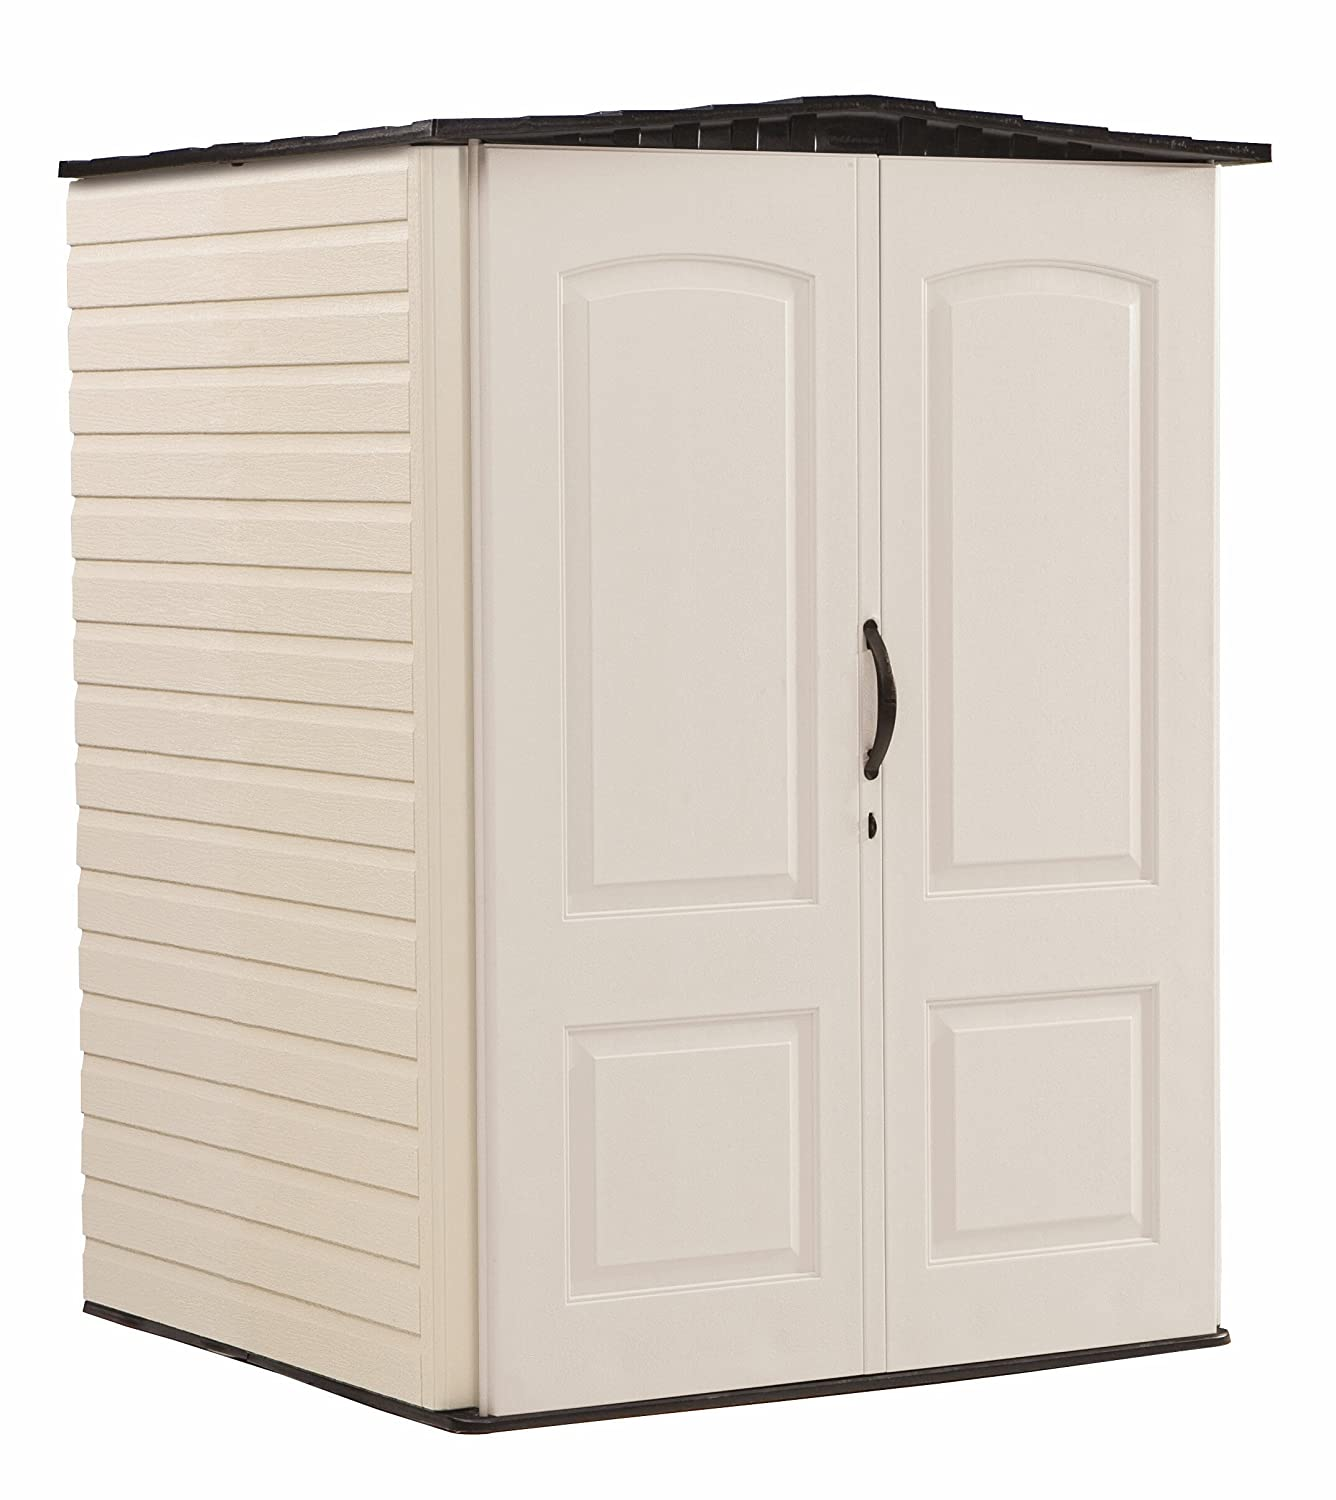 Rubbermaid Storage Shed 2x2.5 Feet Roughneck 2084368